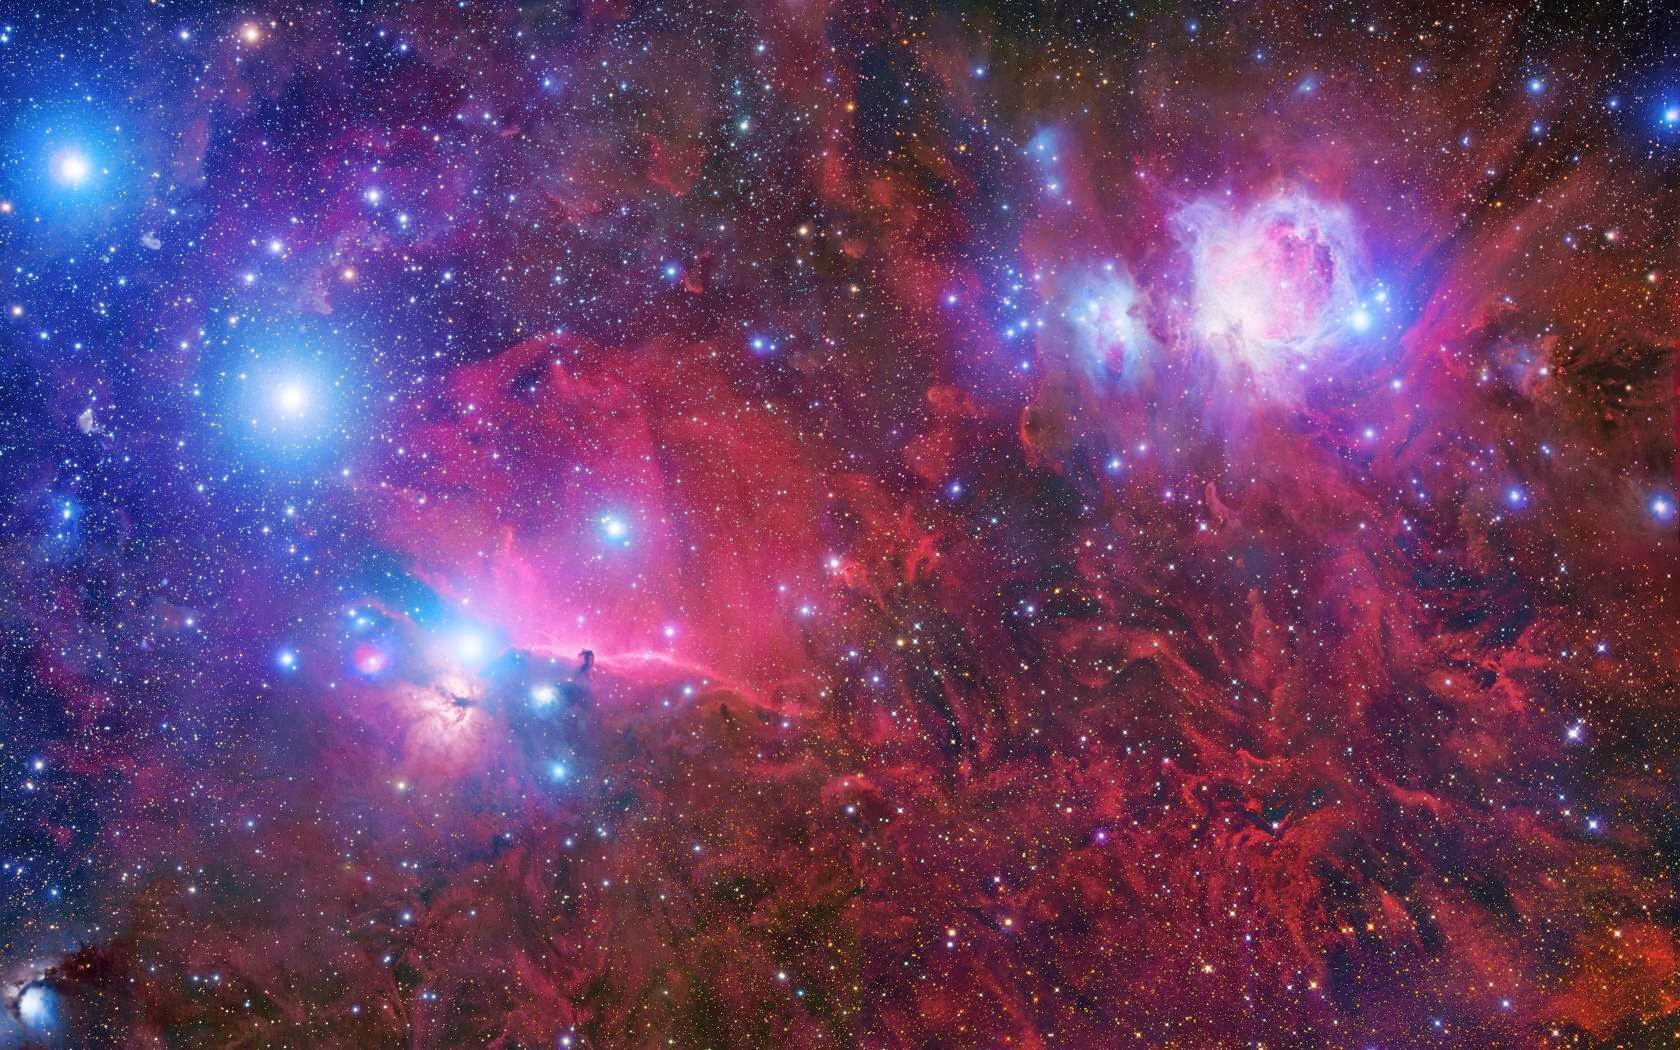 New Trippy Space Wallpaper Dodskypict: Trippy Space Backgrounds